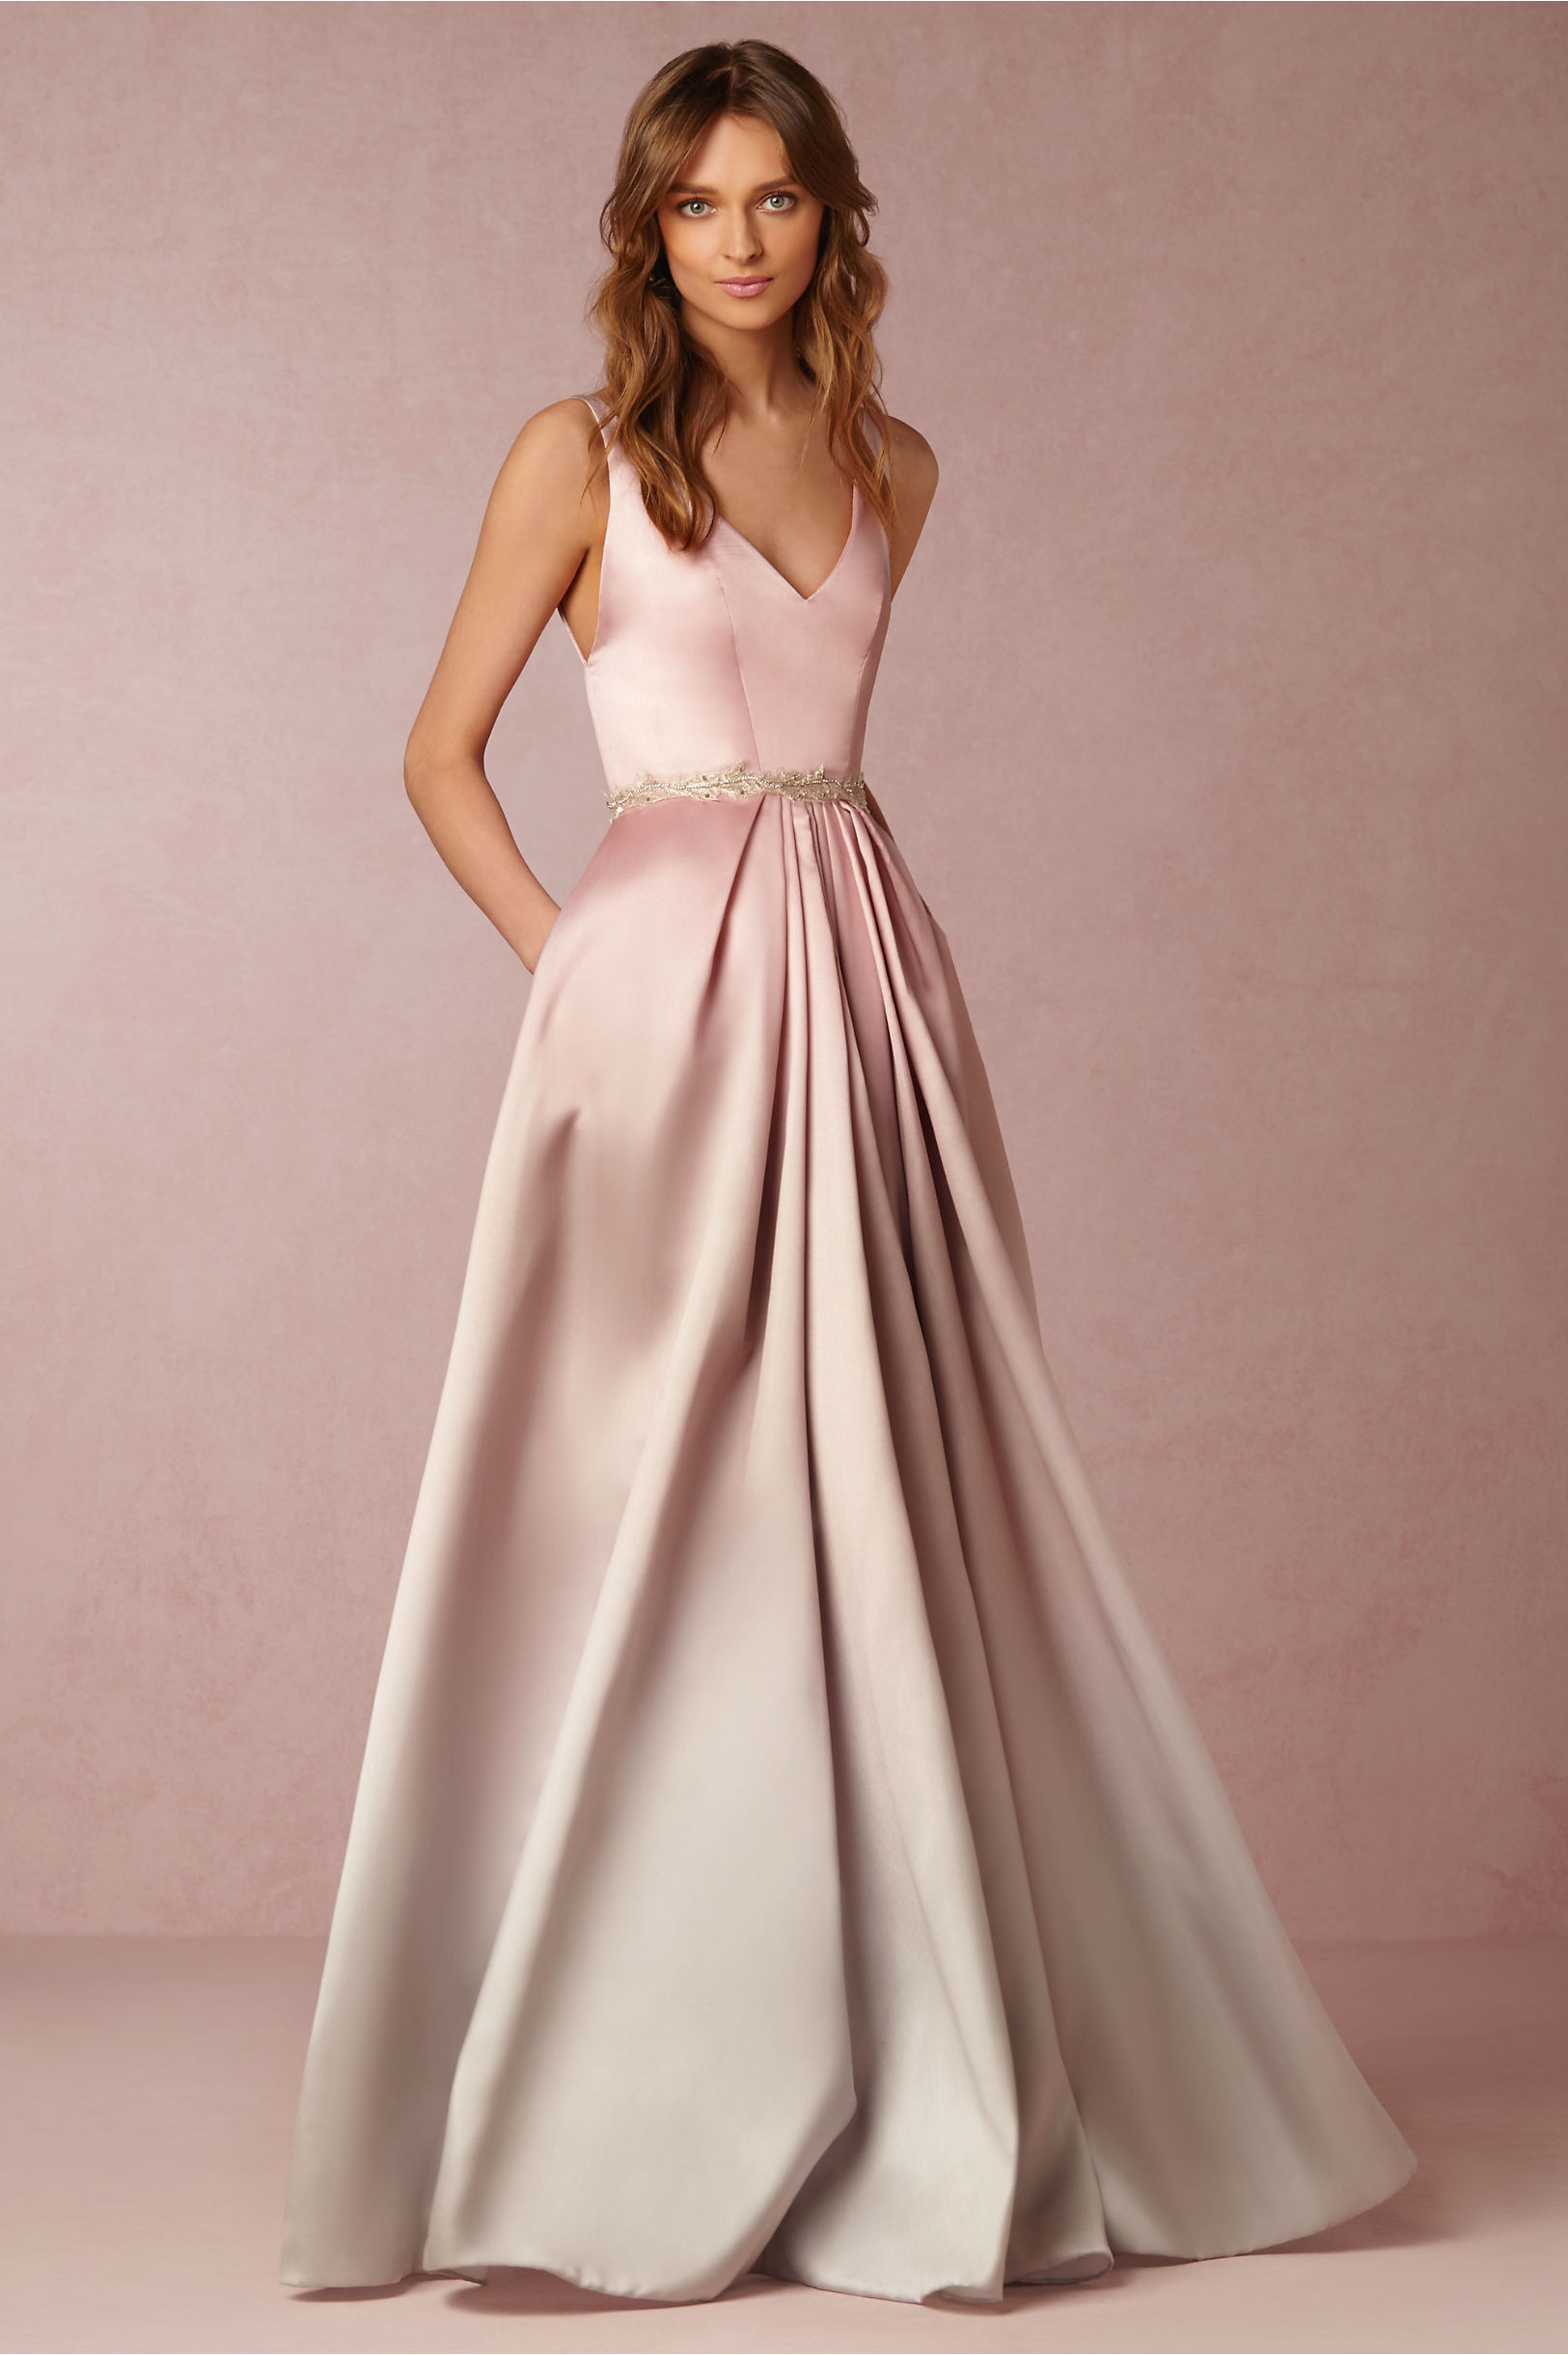 Blush Ombre Lorraine Dress Bhldn